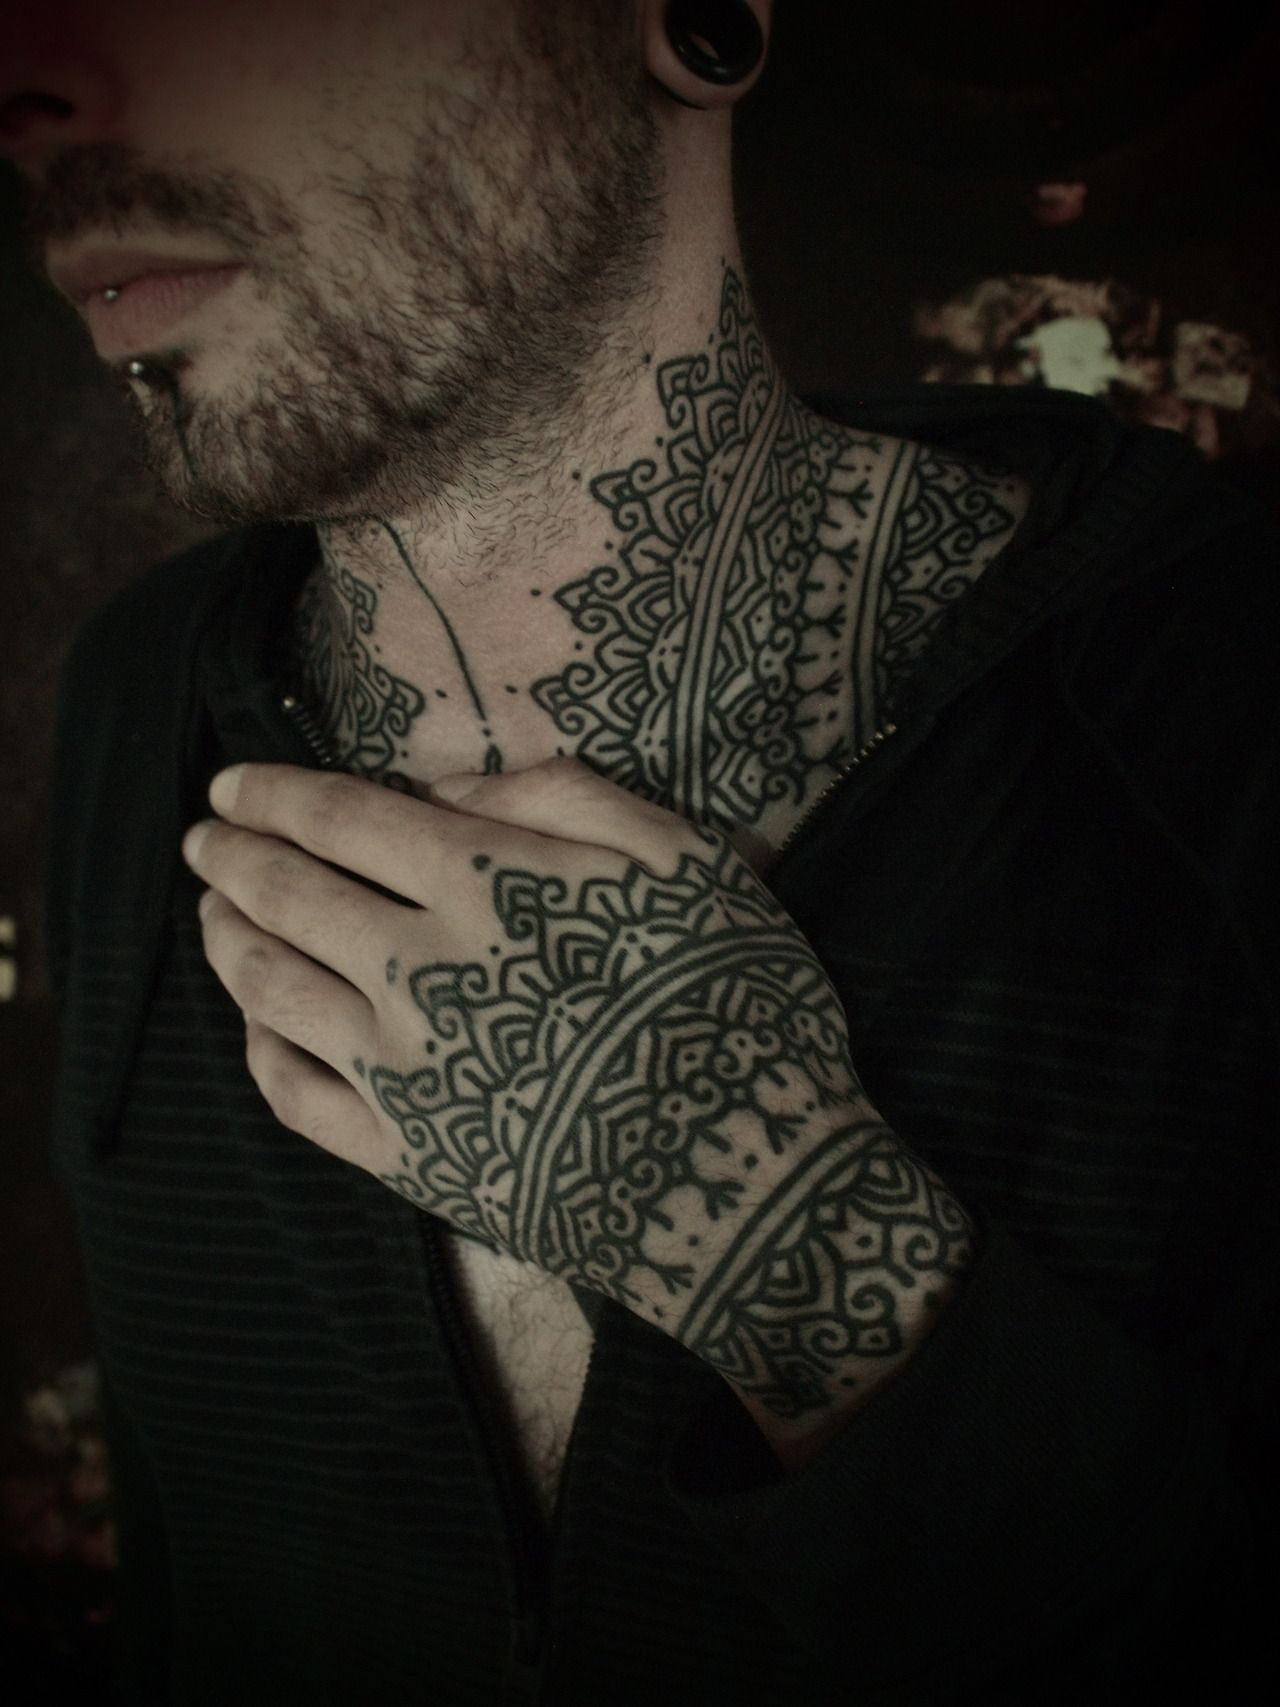 Cool tattoos for white guys and so my slight obsession continues  tattoos  pinterest